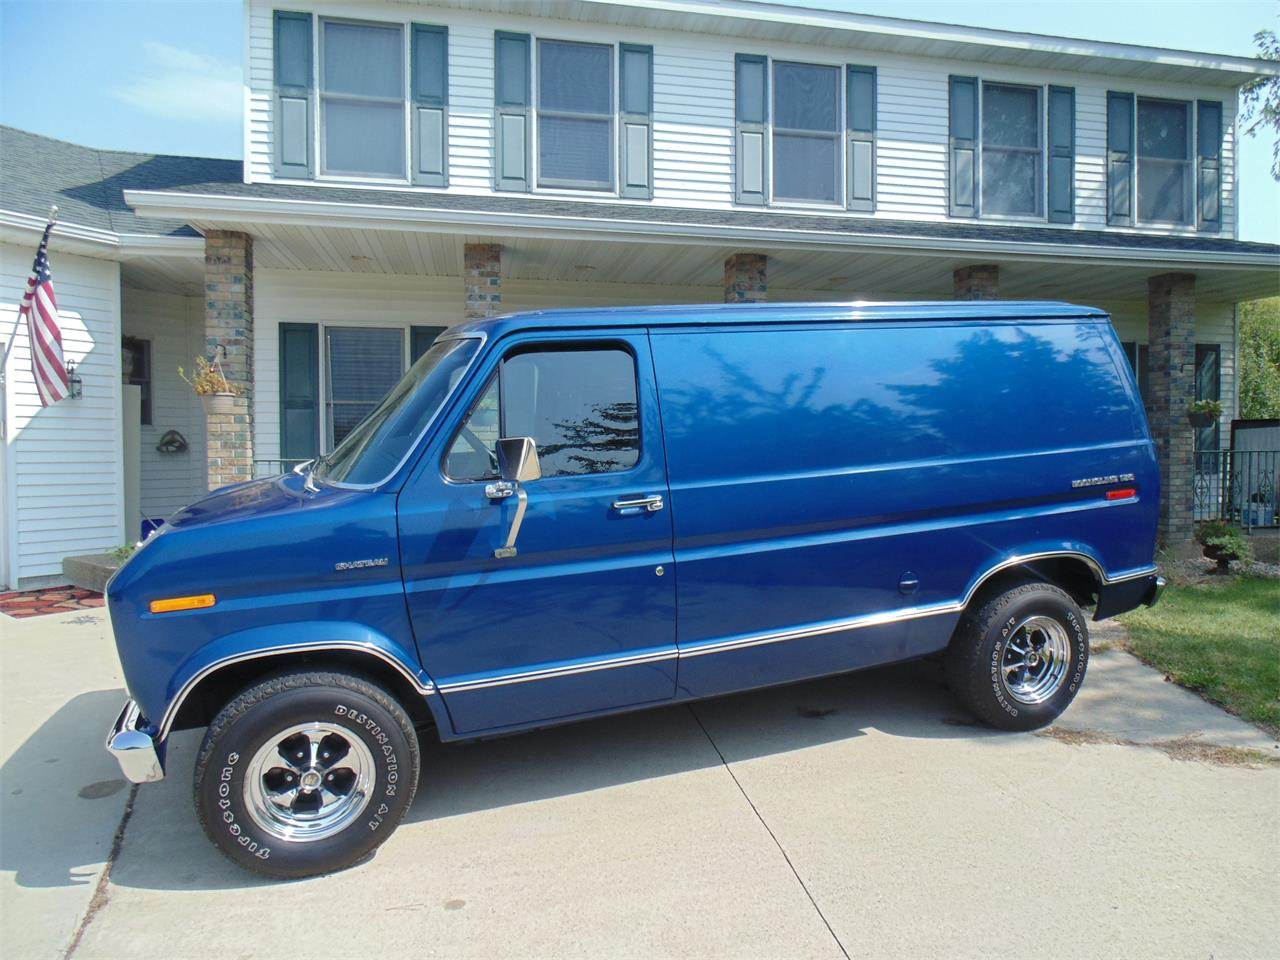 Large picture of 78 econoline luso